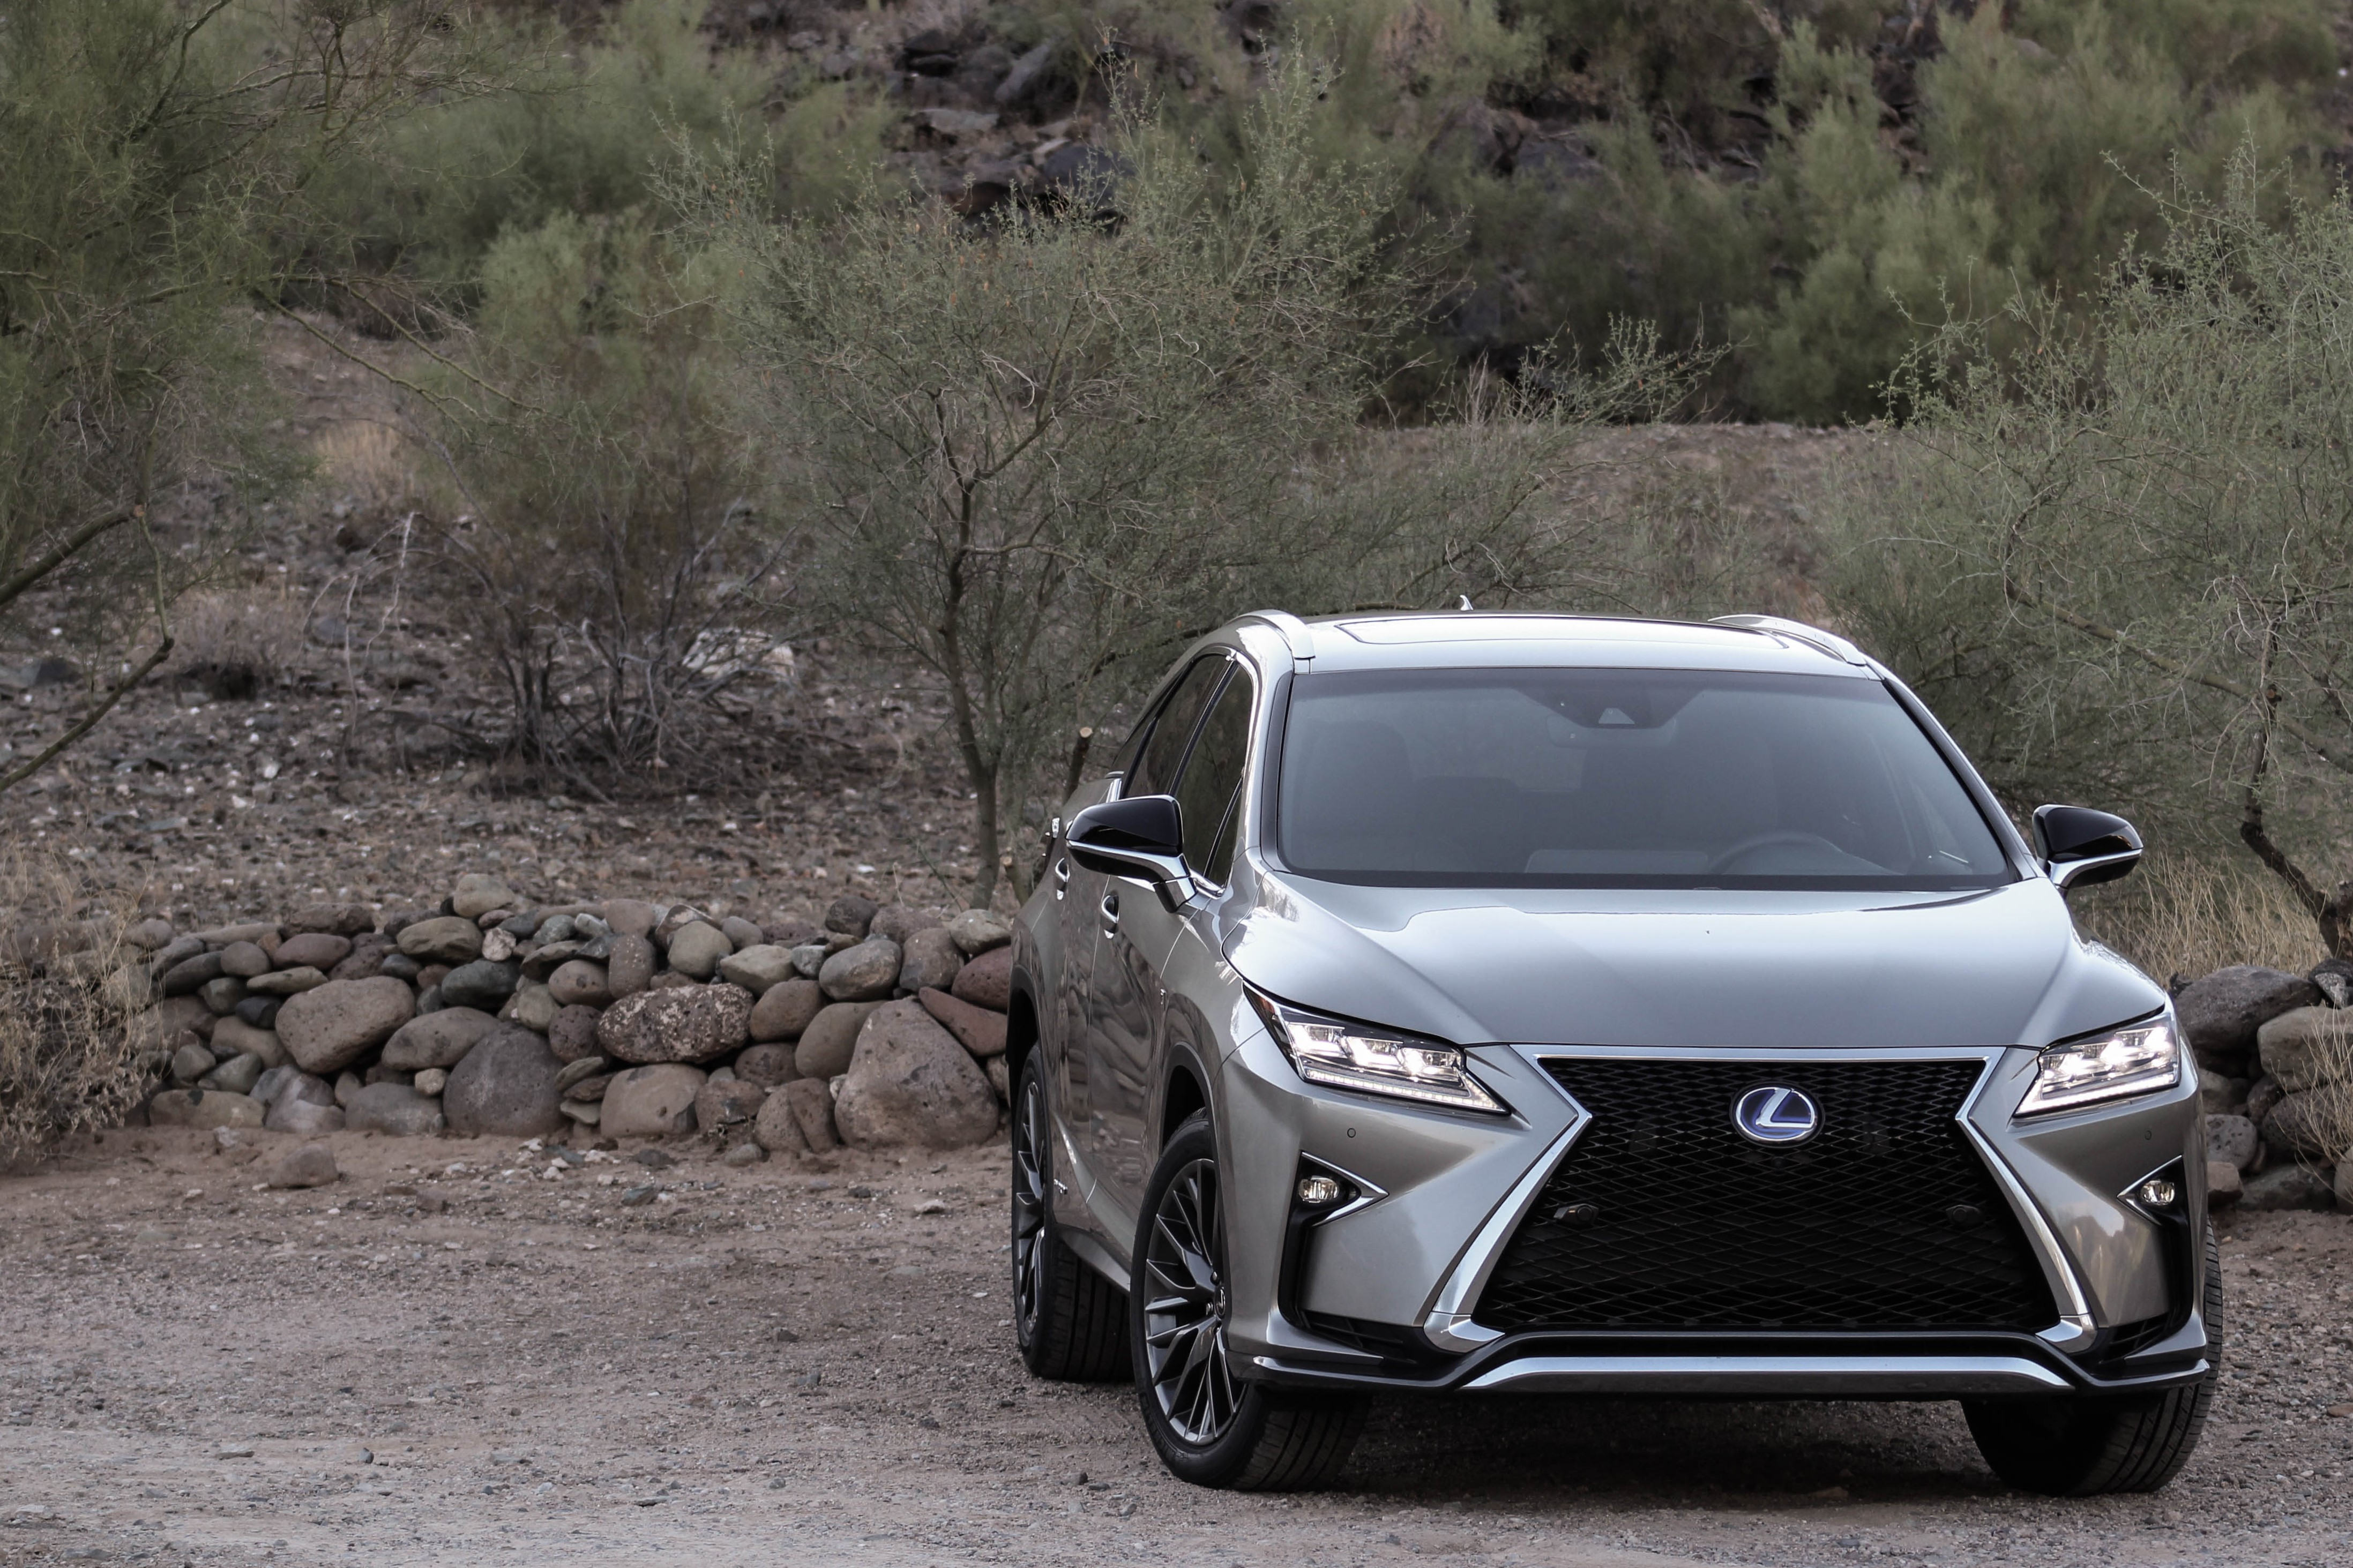 More Than Just Numbers 2017 Lexus RX 450h F SPORT SIX SPEED BLOG